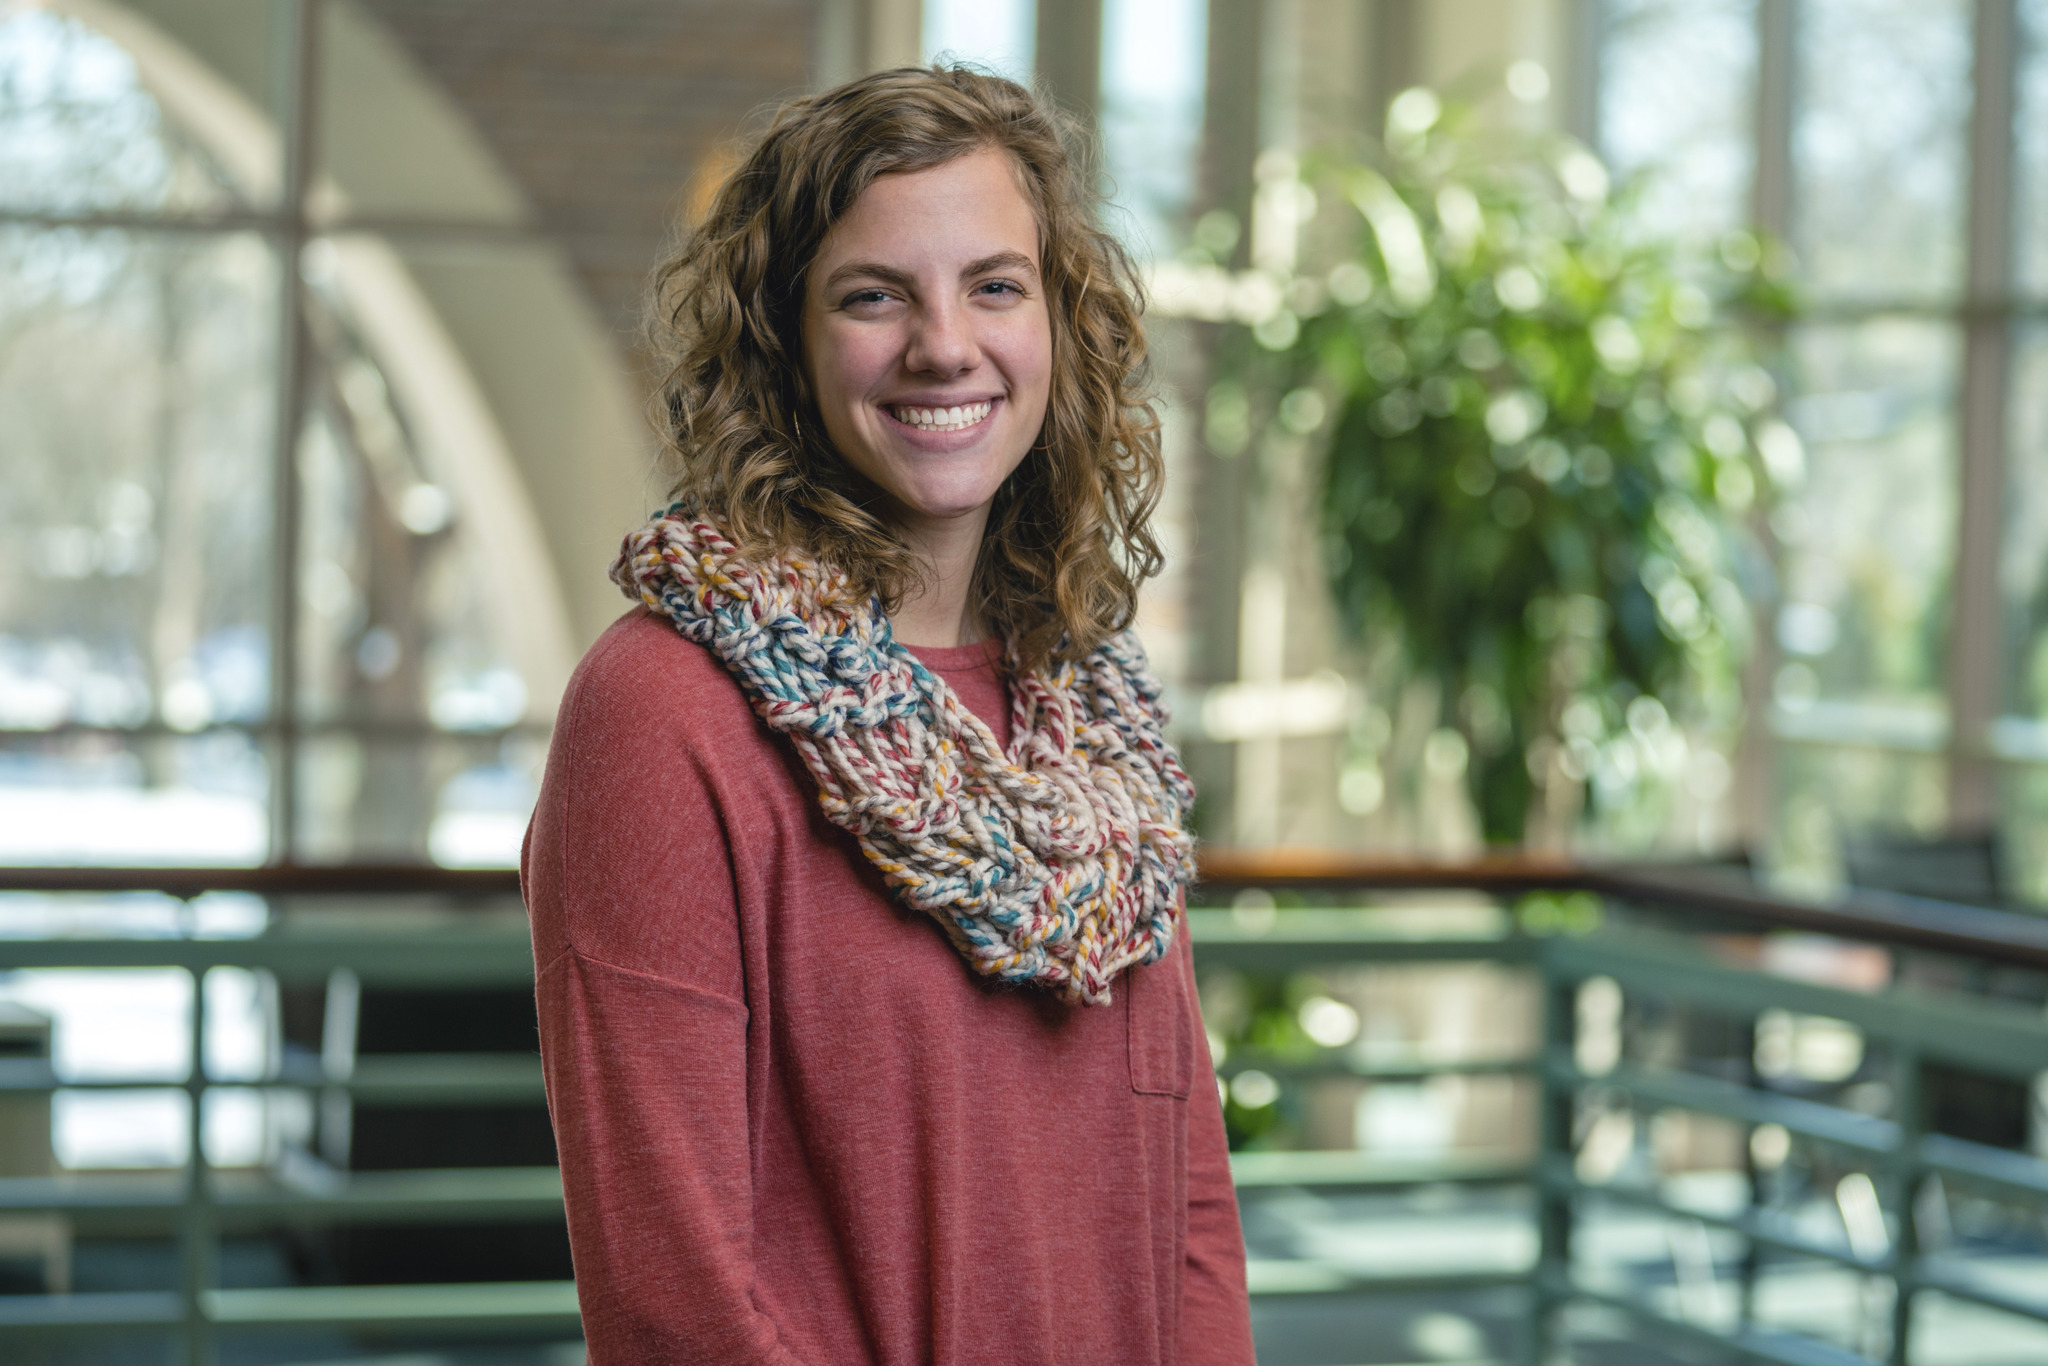 Mariah Nelesen is a student at Trinity Christian College majoring in Graphic Design and Spanish